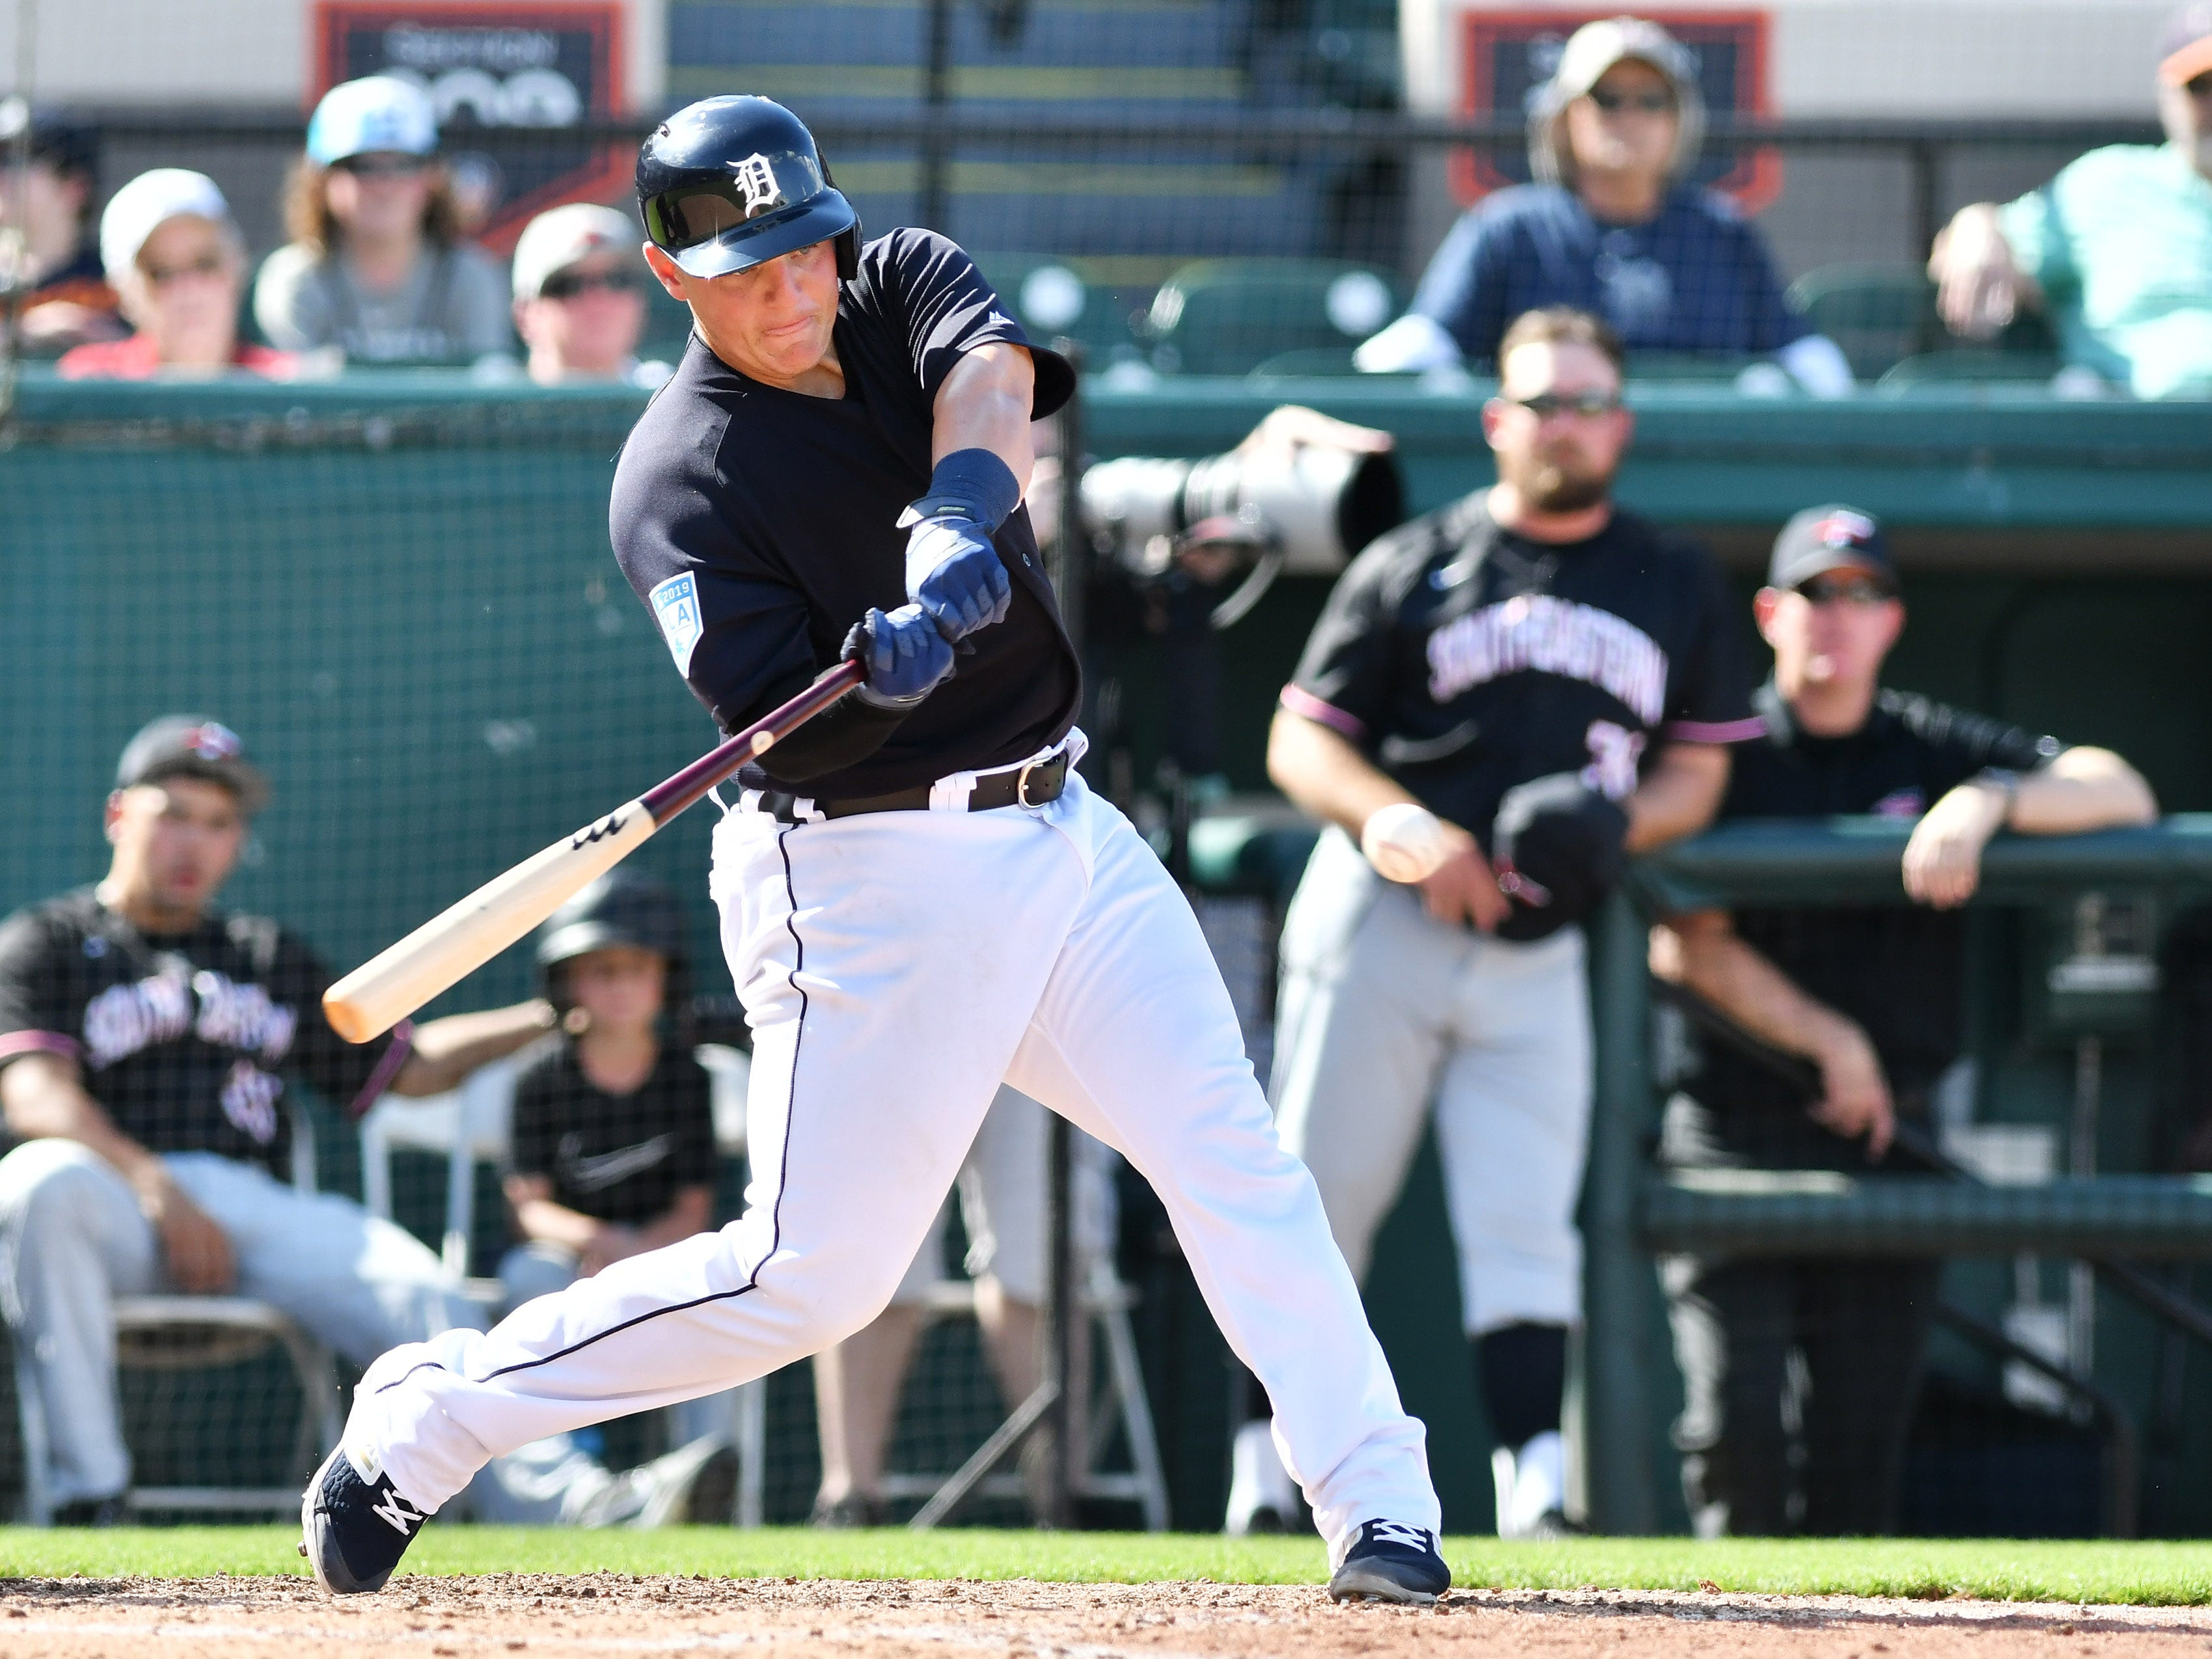 Tigers non-roster invitee Kade Scivicque doubles with an RBI in the seventh inning.